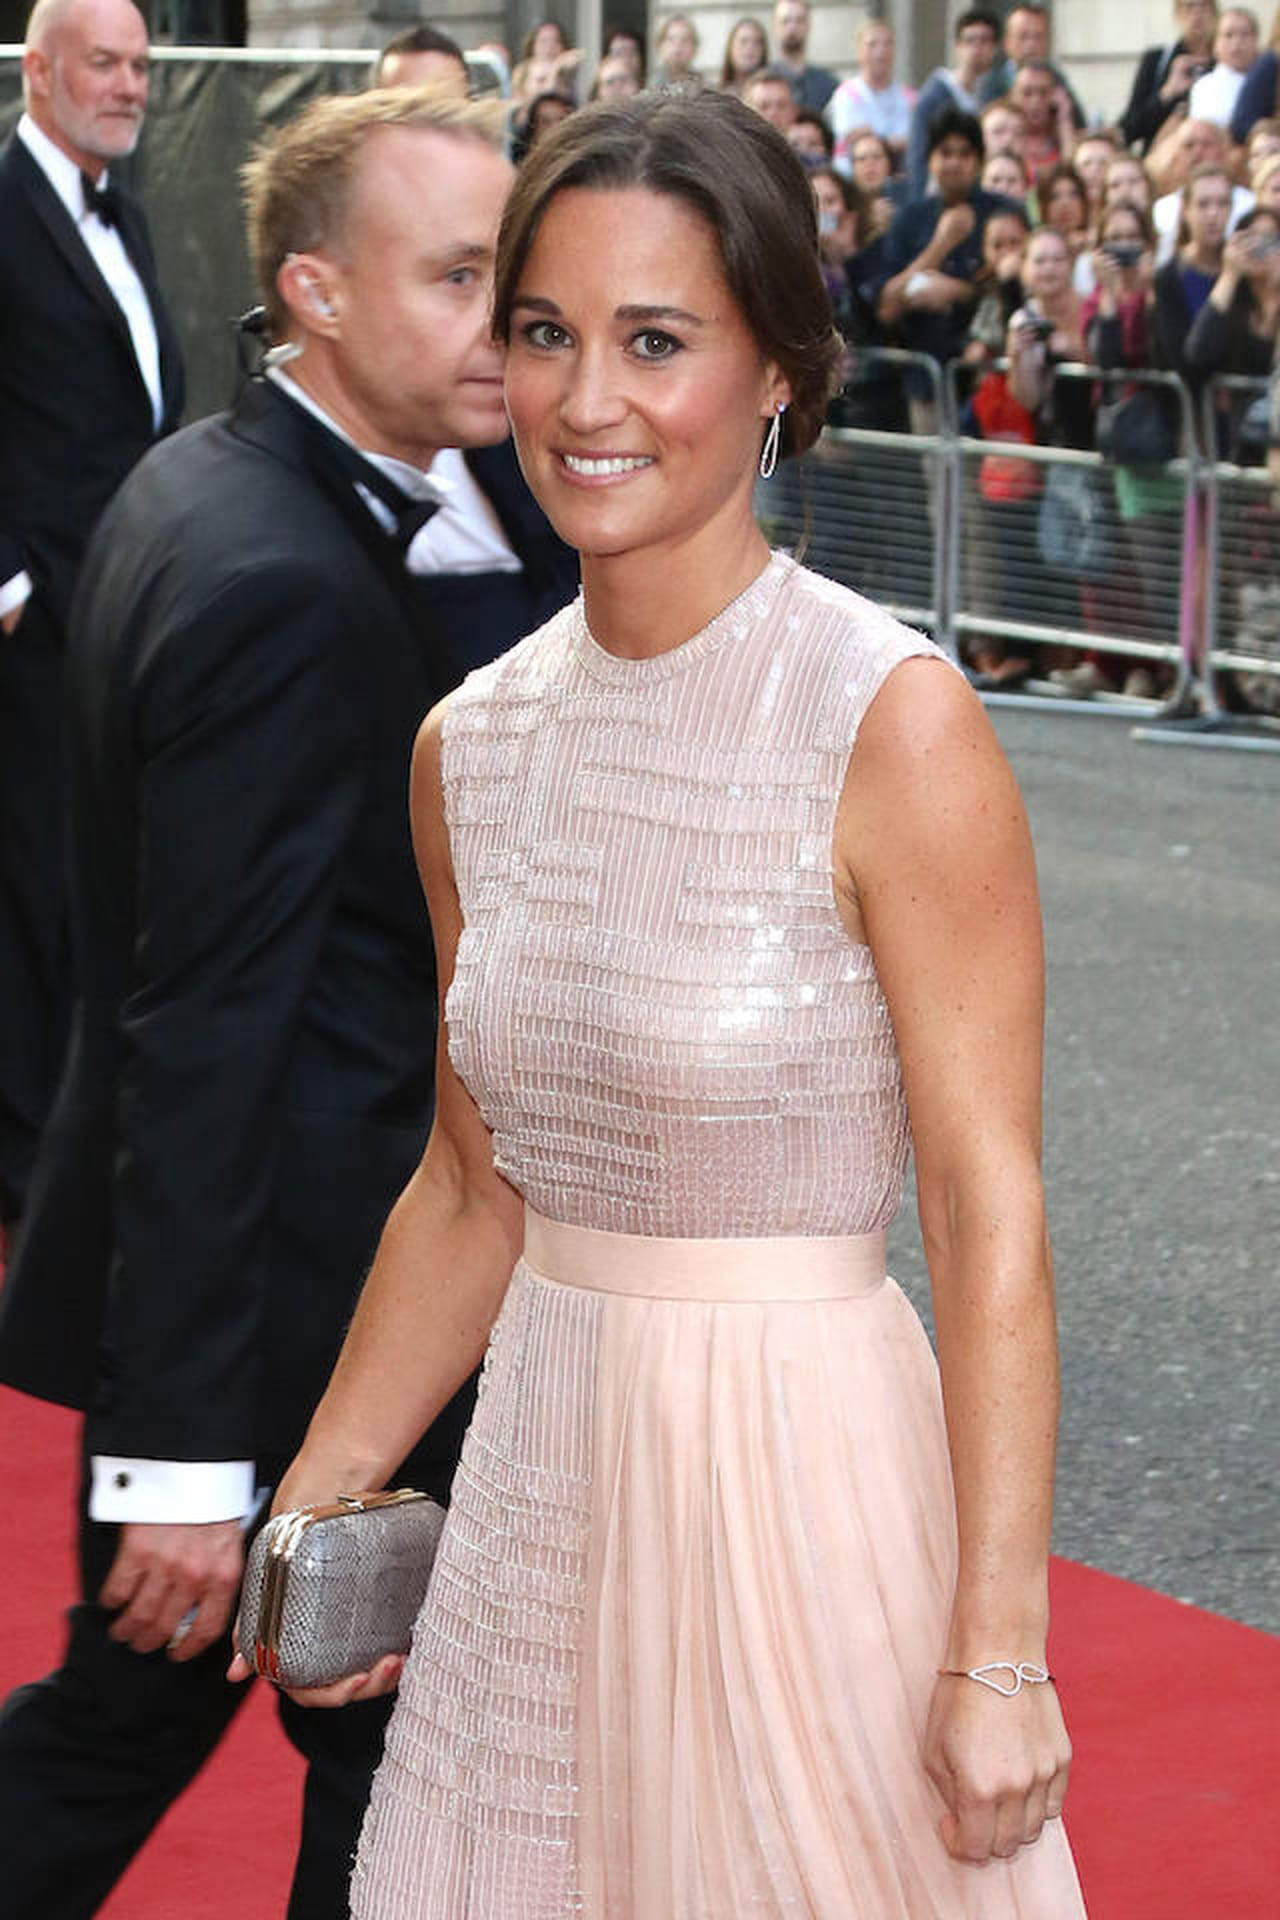 Matrimonio Kate Middleton : James matthews pippa middleton presto sposi